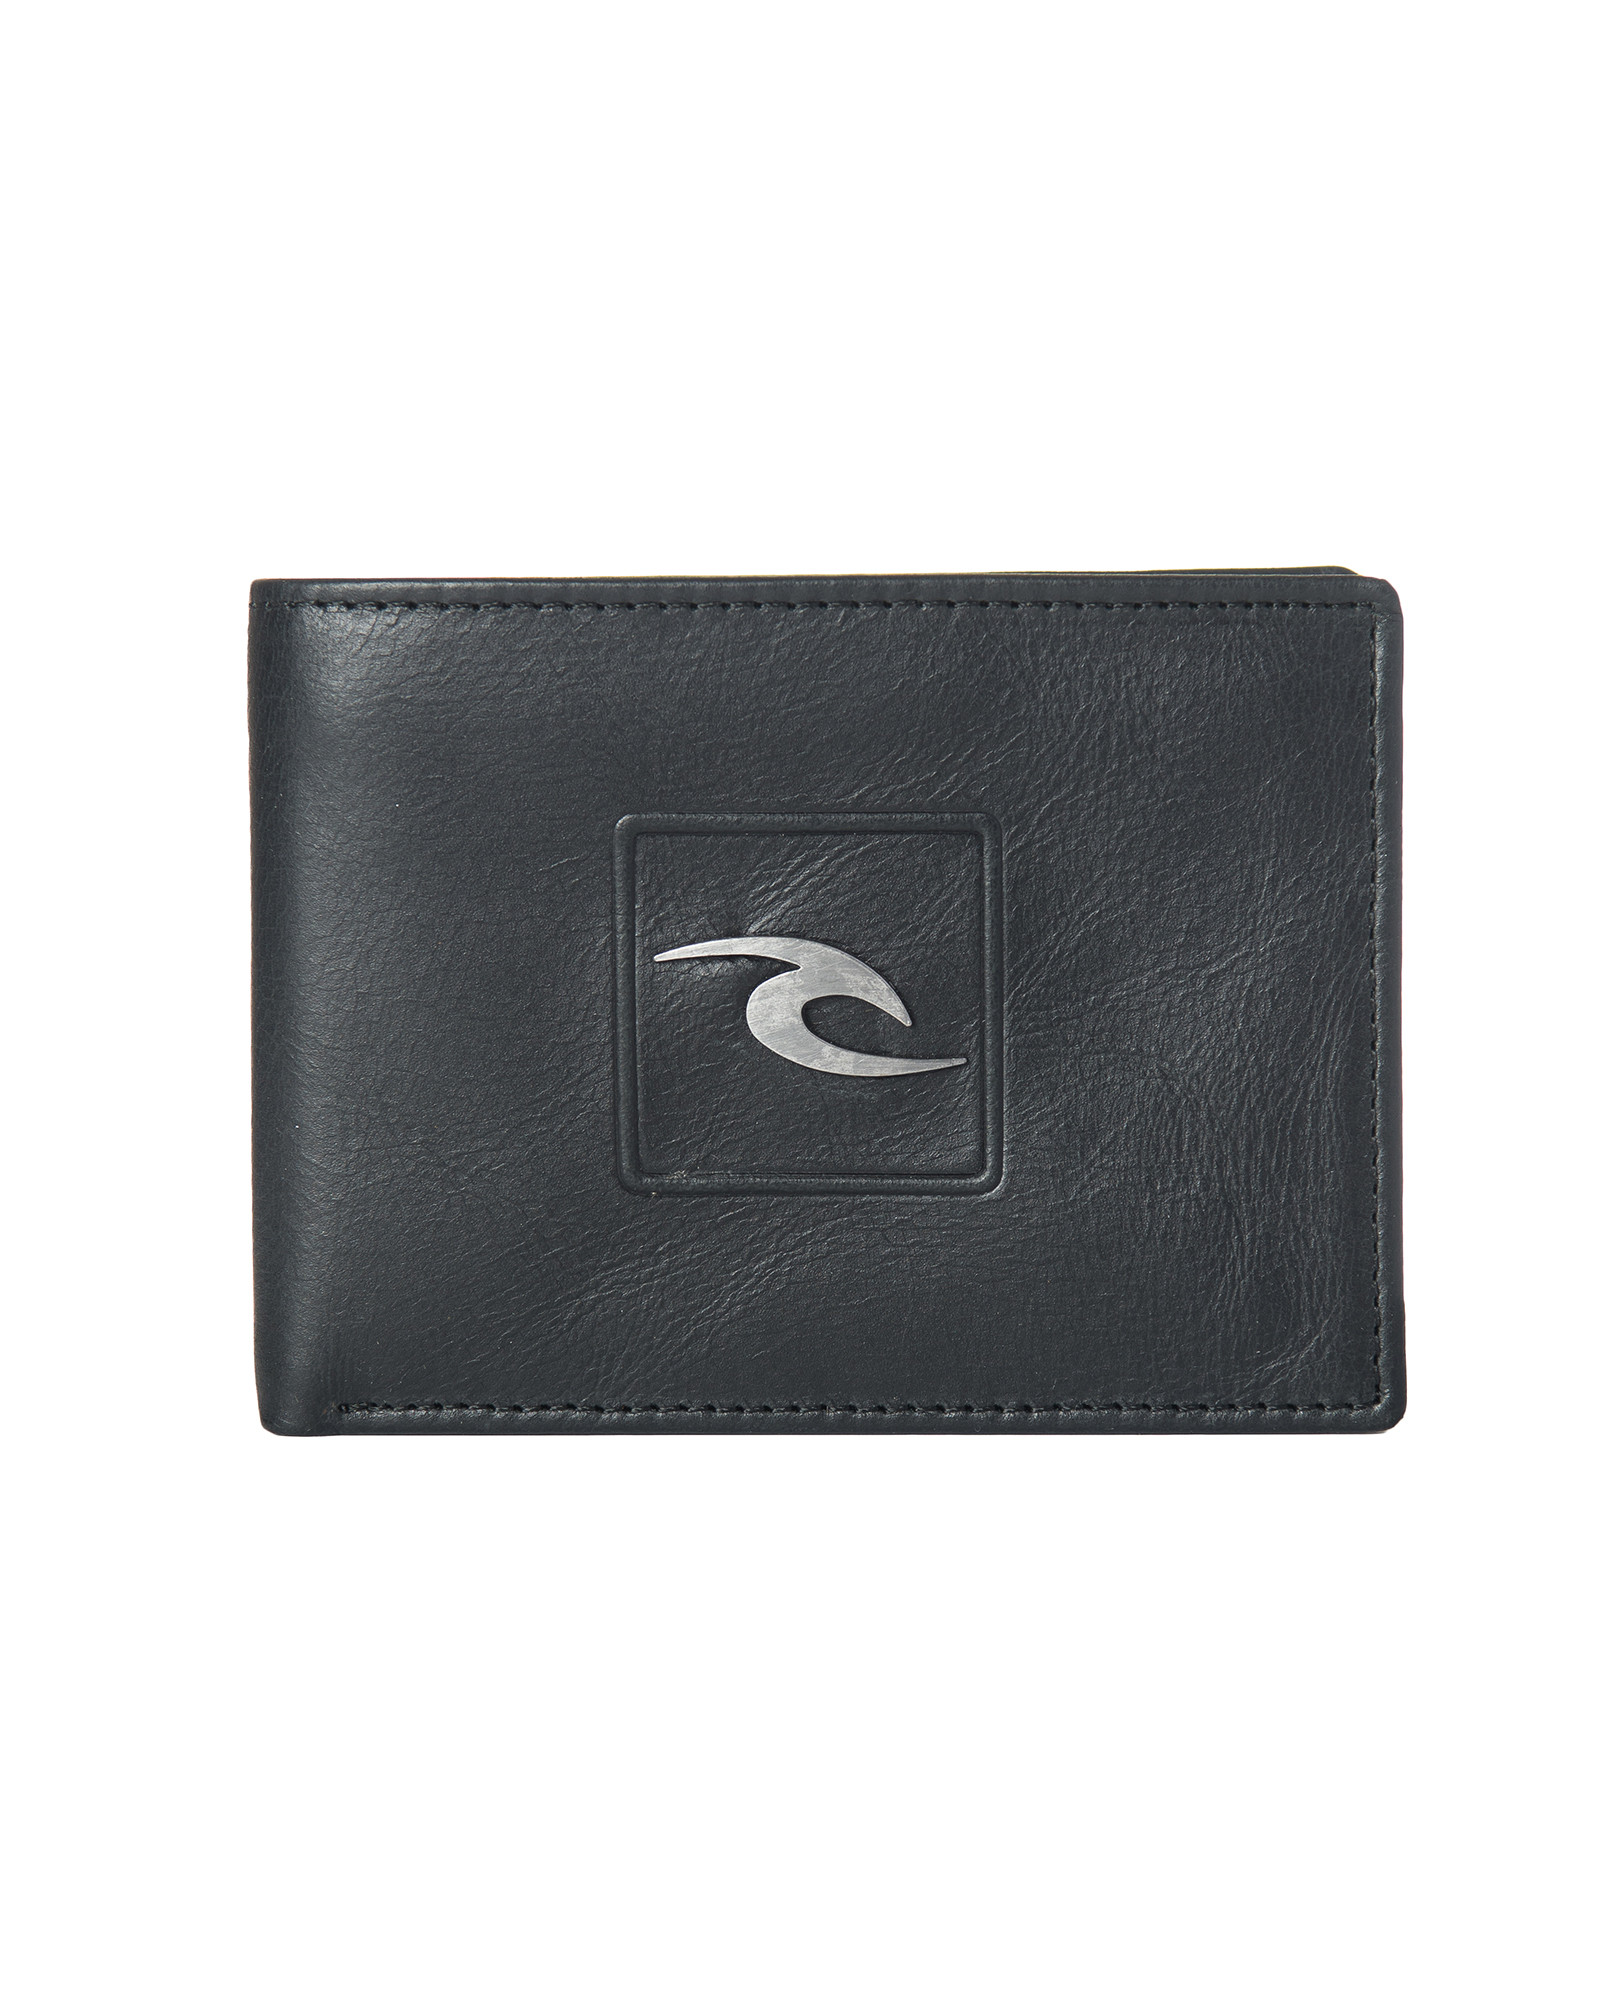 CARTERA RIP CURL RIDER RFID ALL DAY